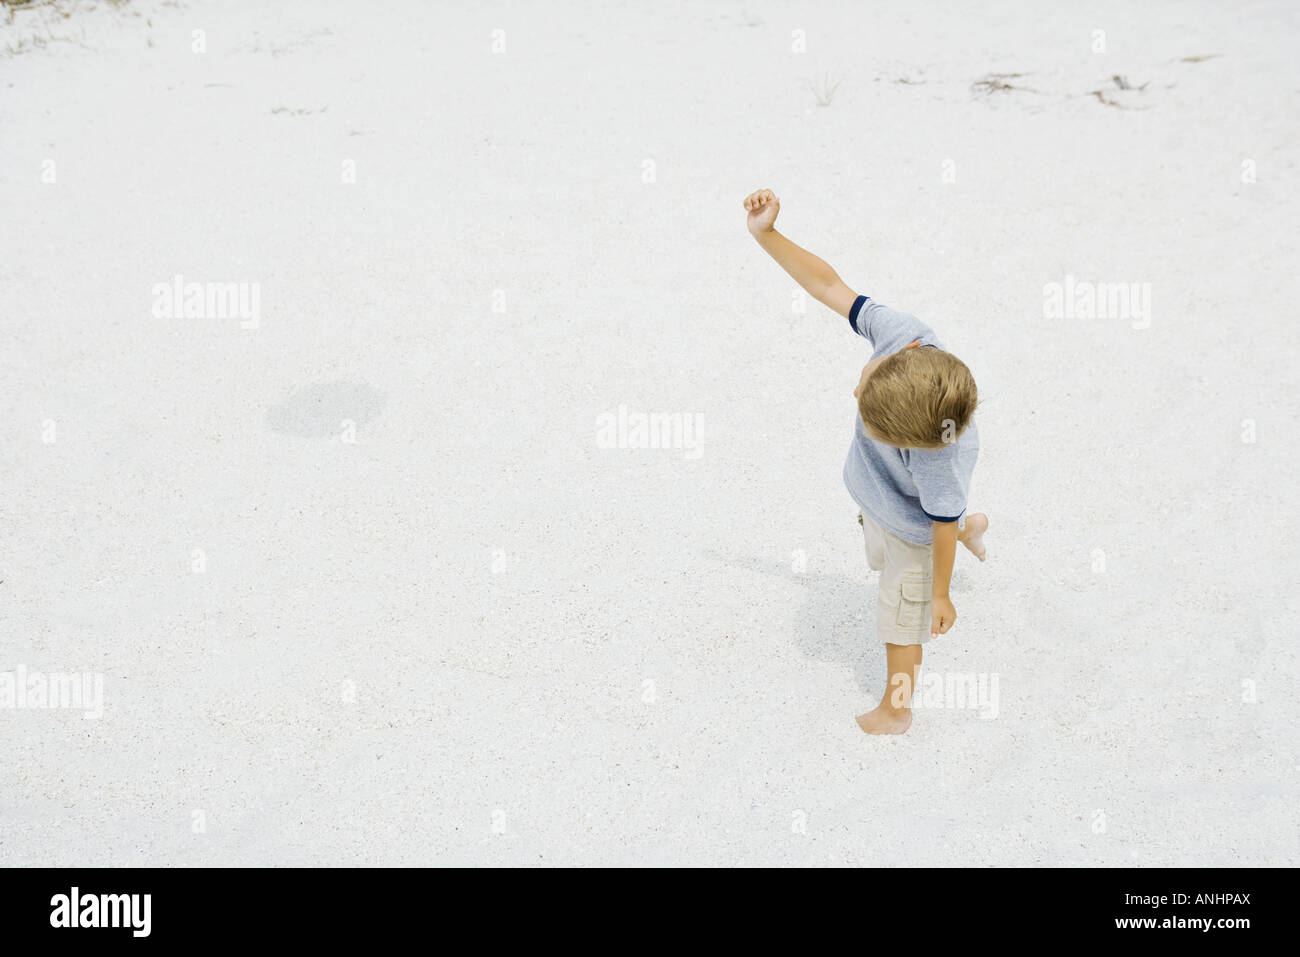 Young boy walking on the beach with one arm raised, high angle view - Stock Image